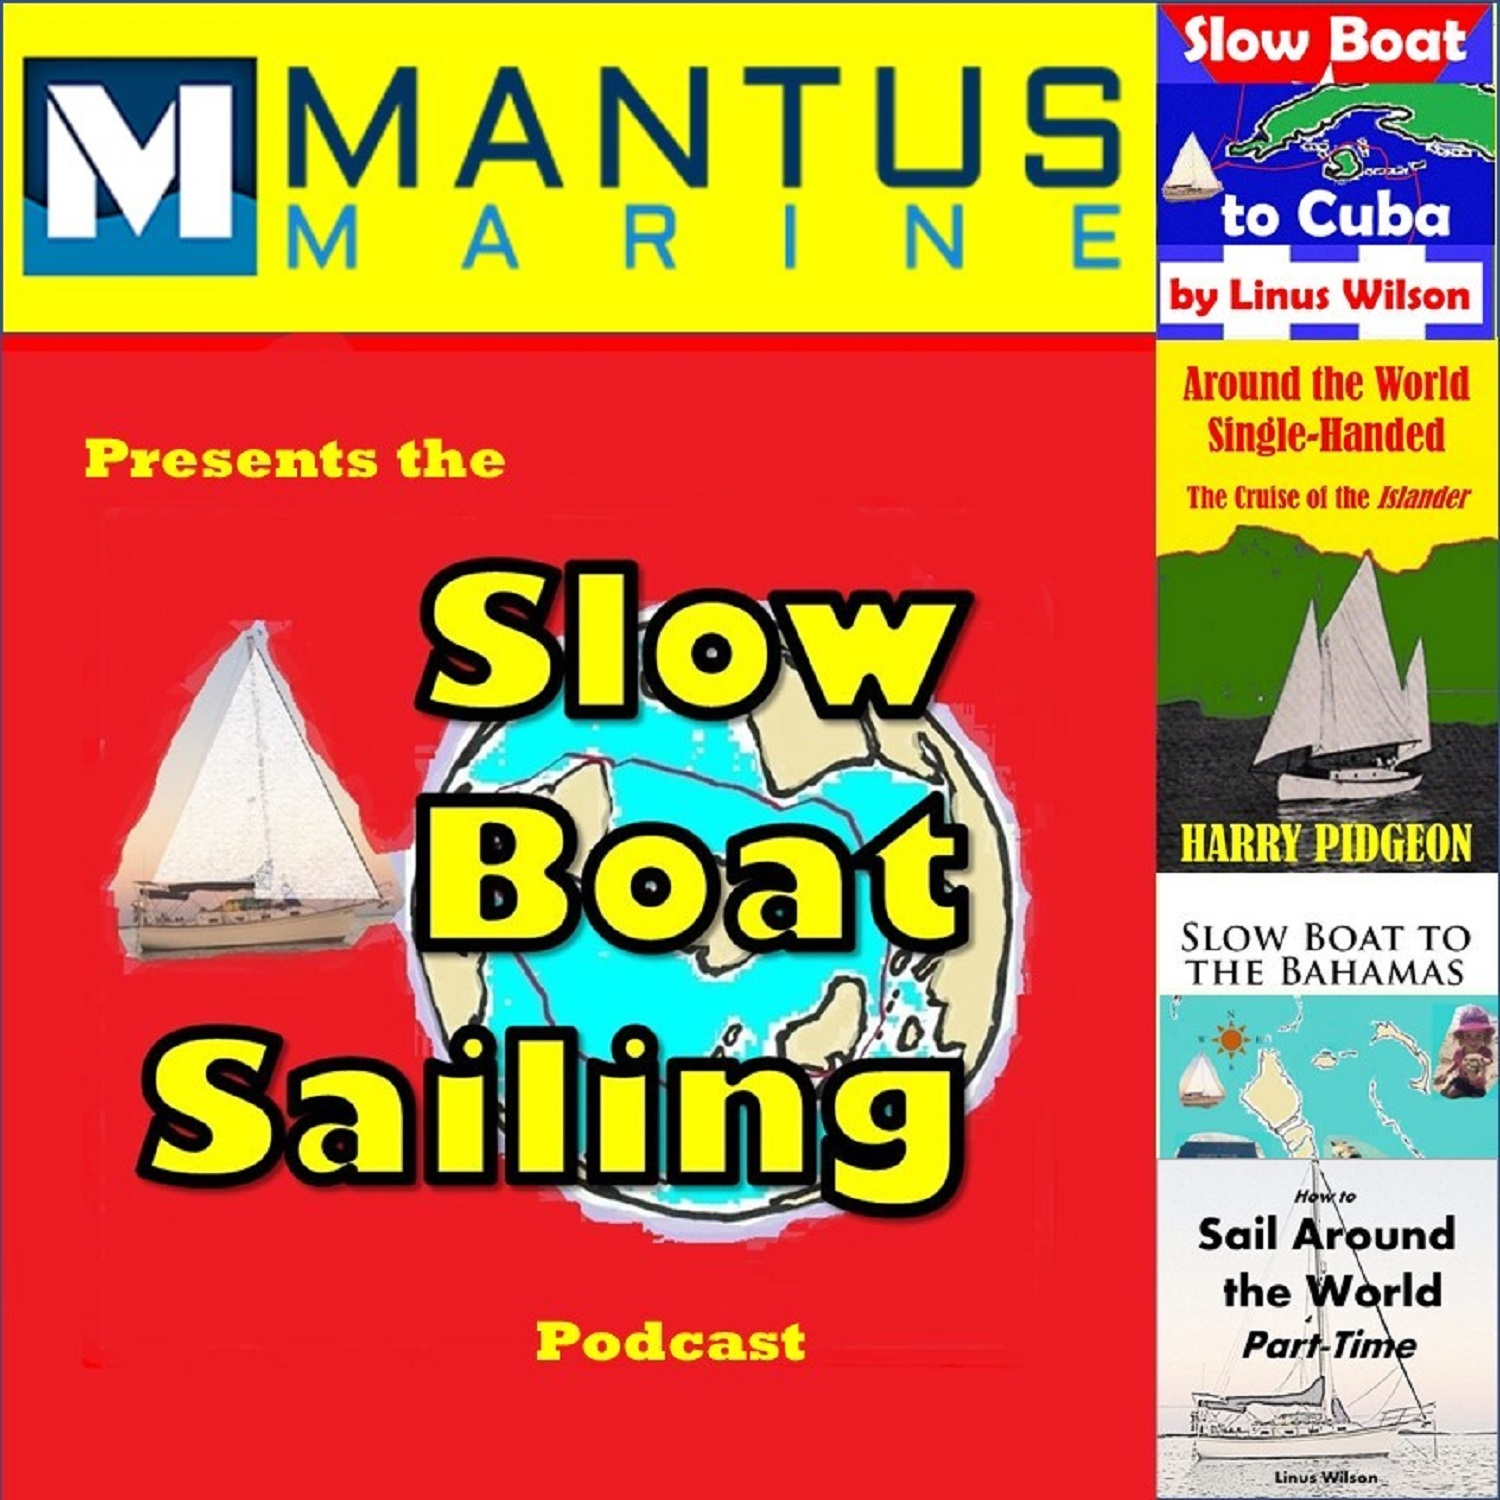 Ep. 51: Sunk by Hurricane Irma and Stranded by Maria, Sailing Mischeif's Ariana Czaia Interviewed by Linus Wilson